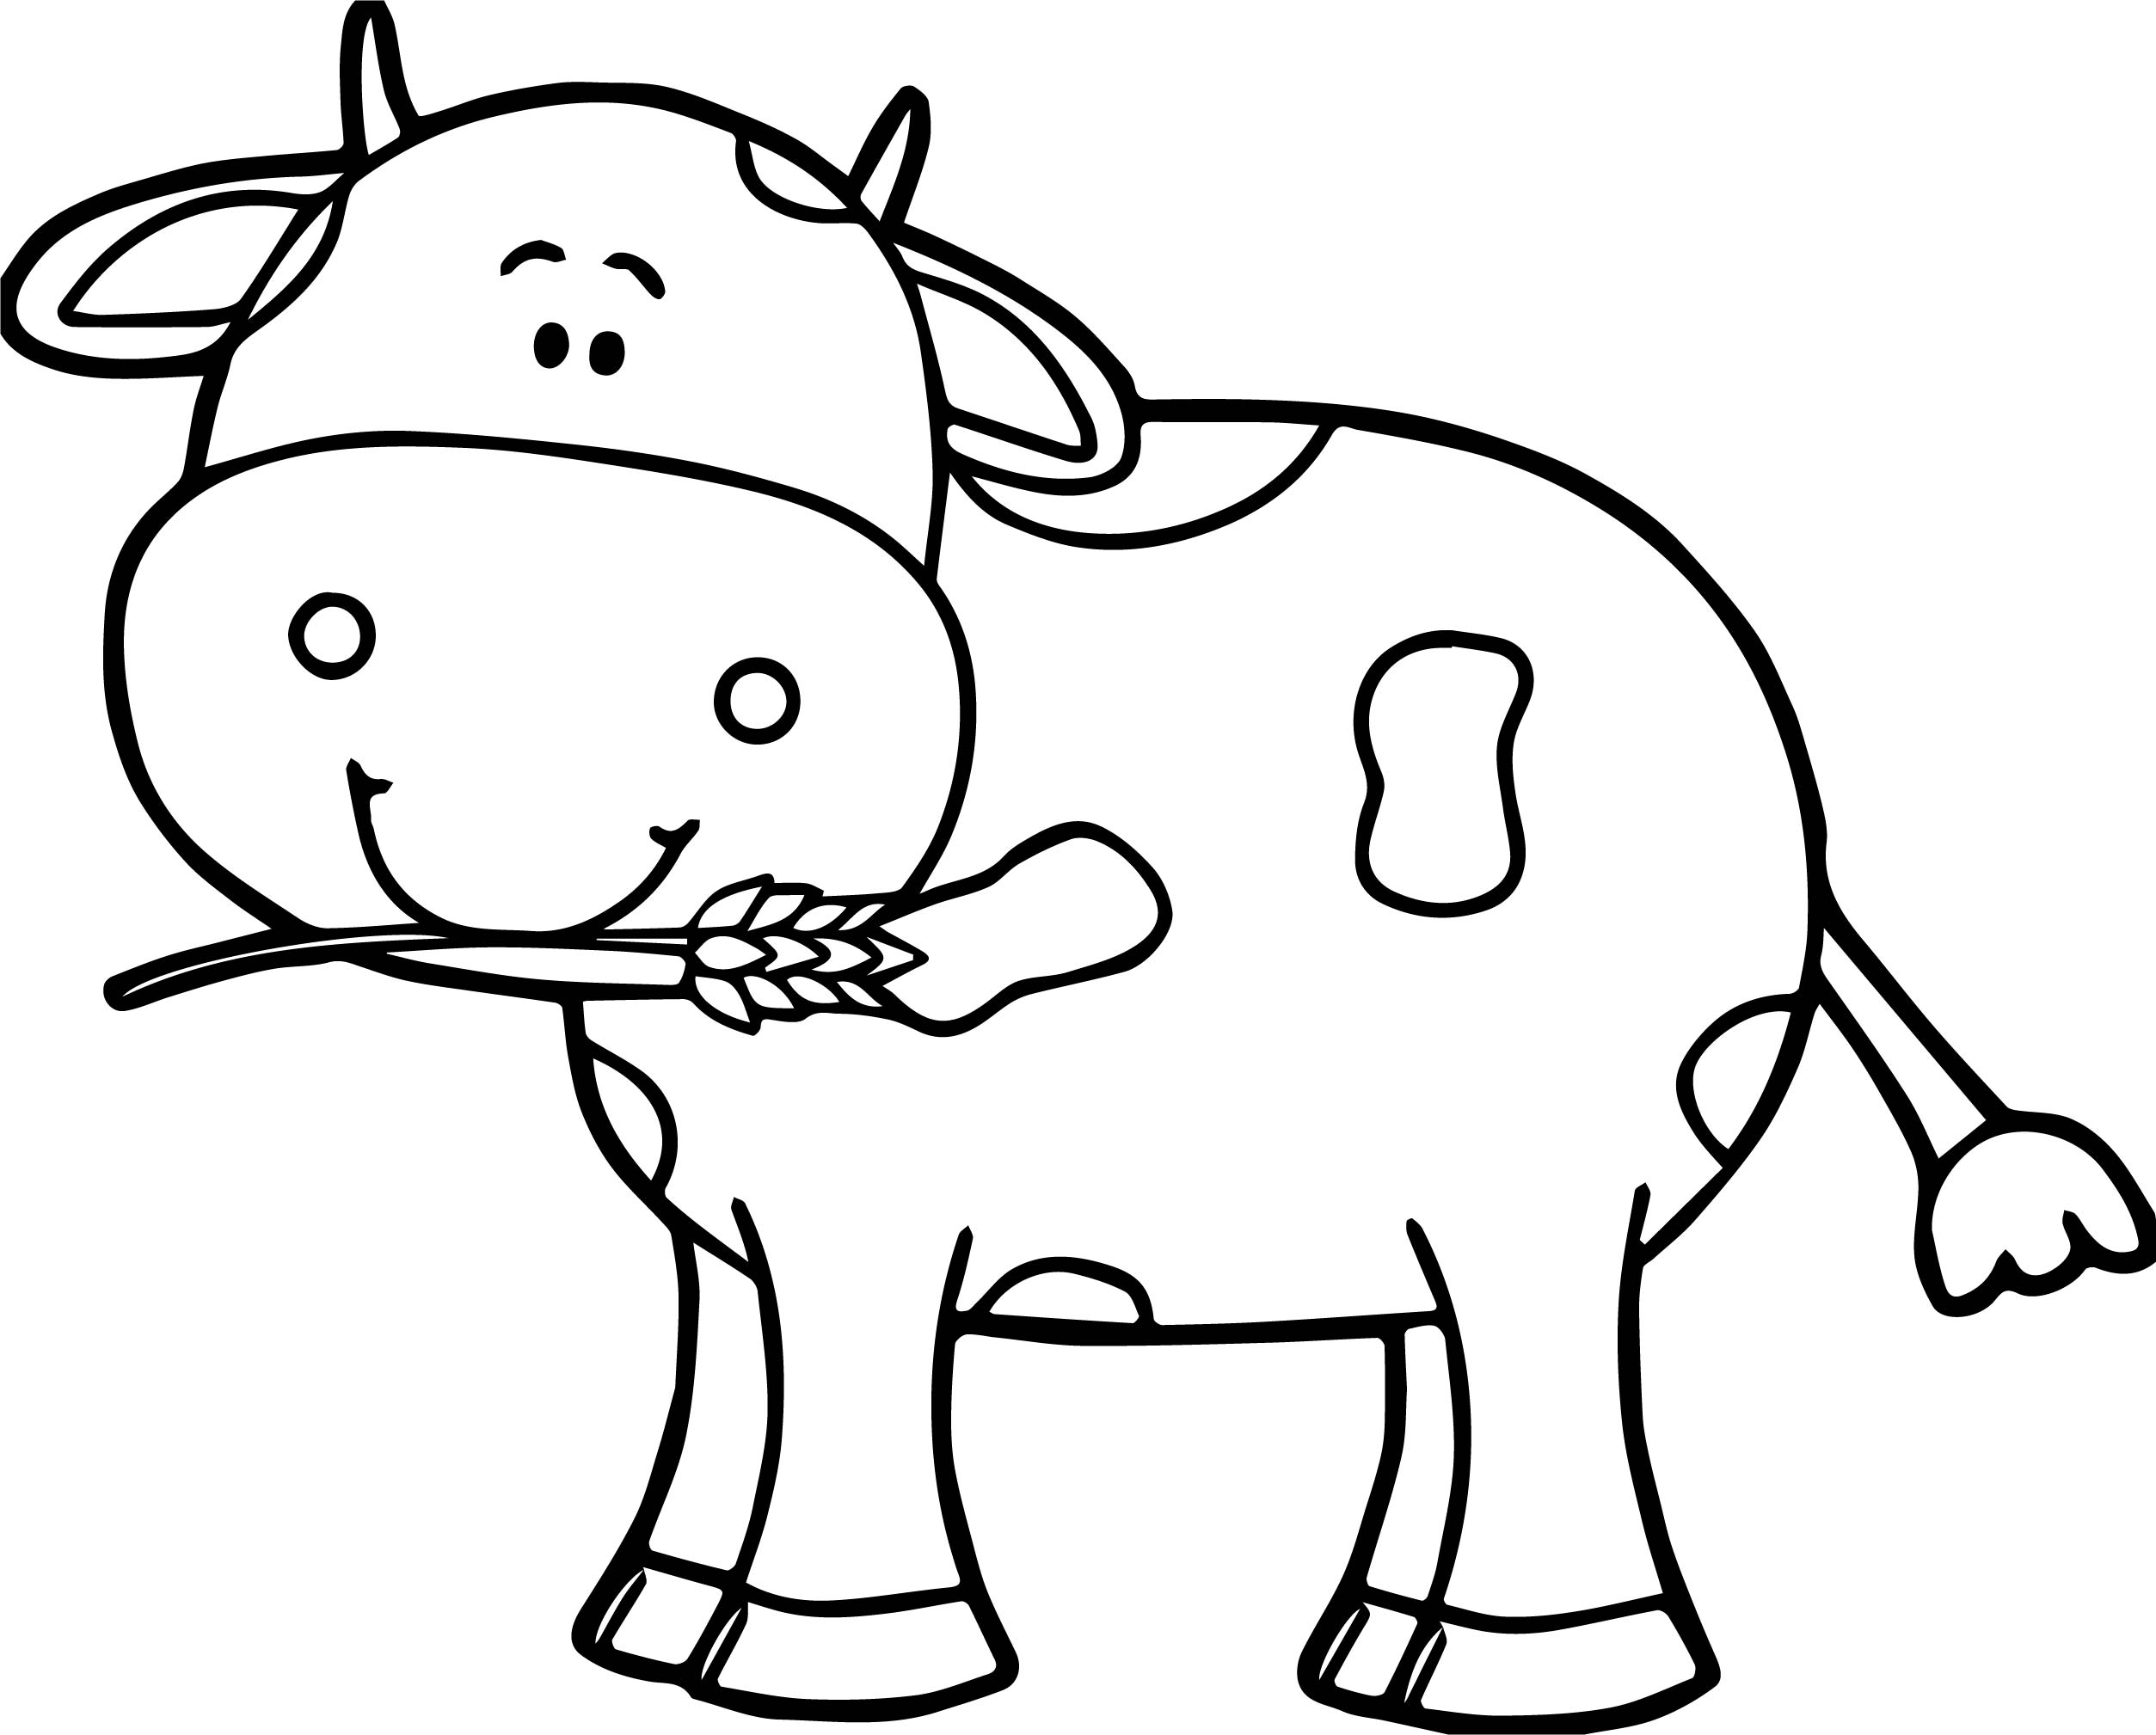 Drawn cattle small kid #9